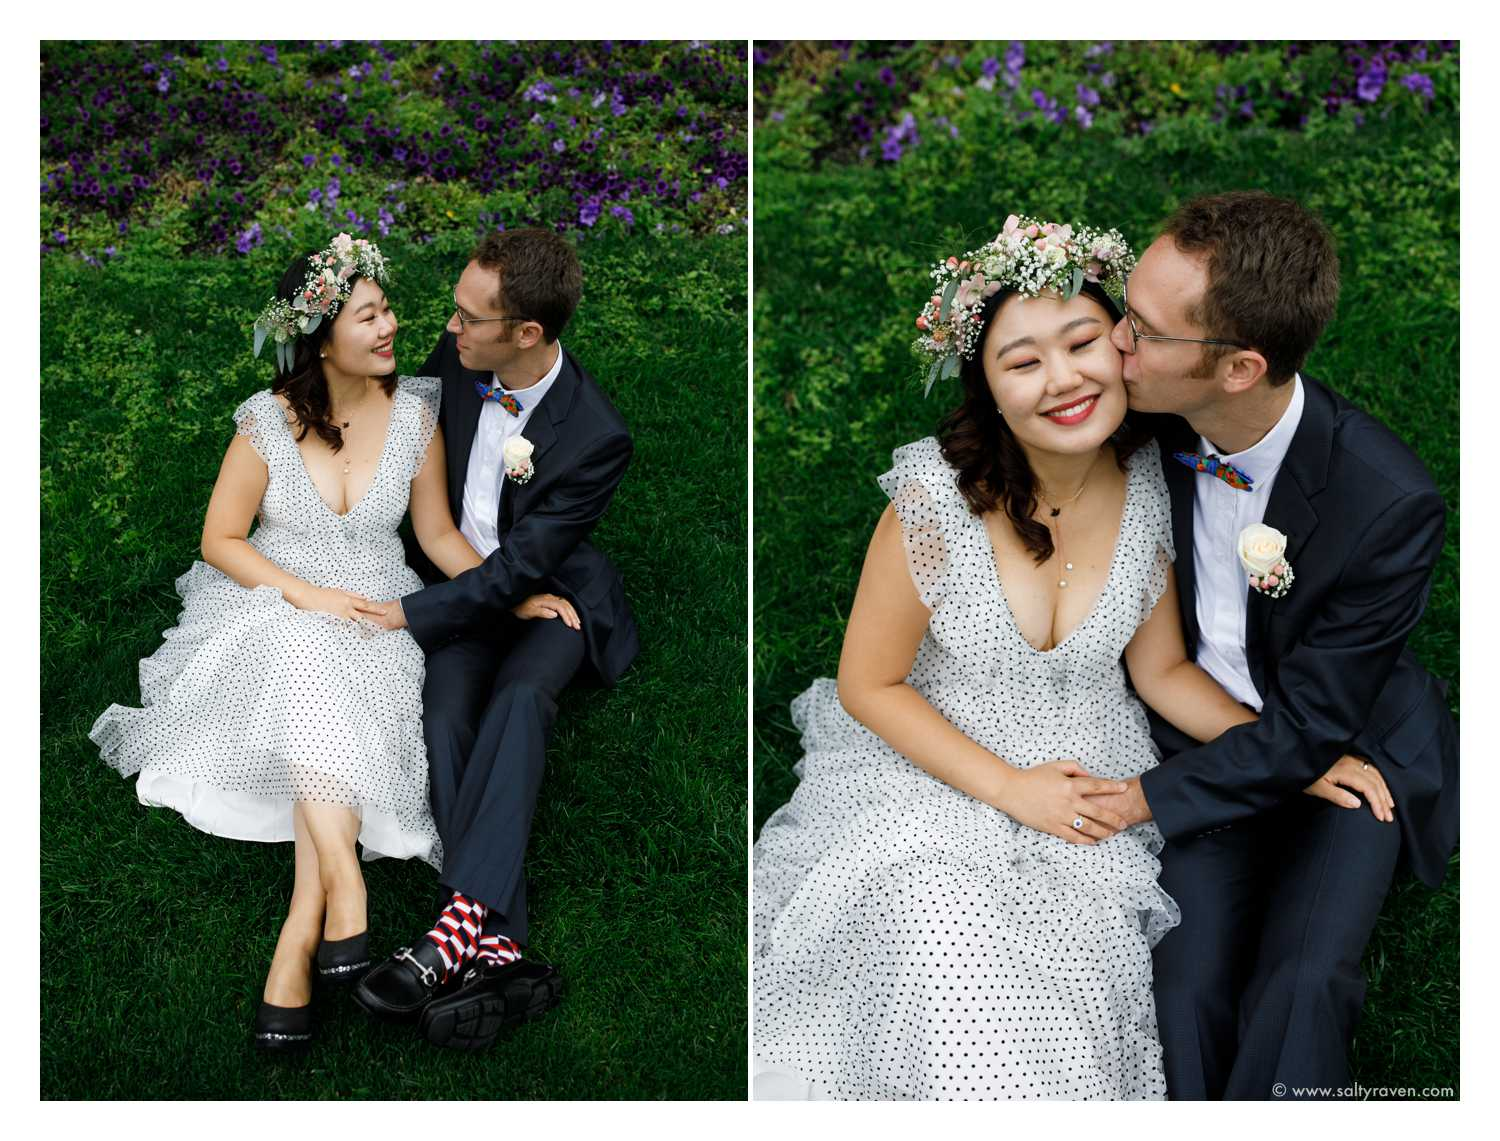 The newly married couple sits down on the lawn outside Cambridge City Hall.